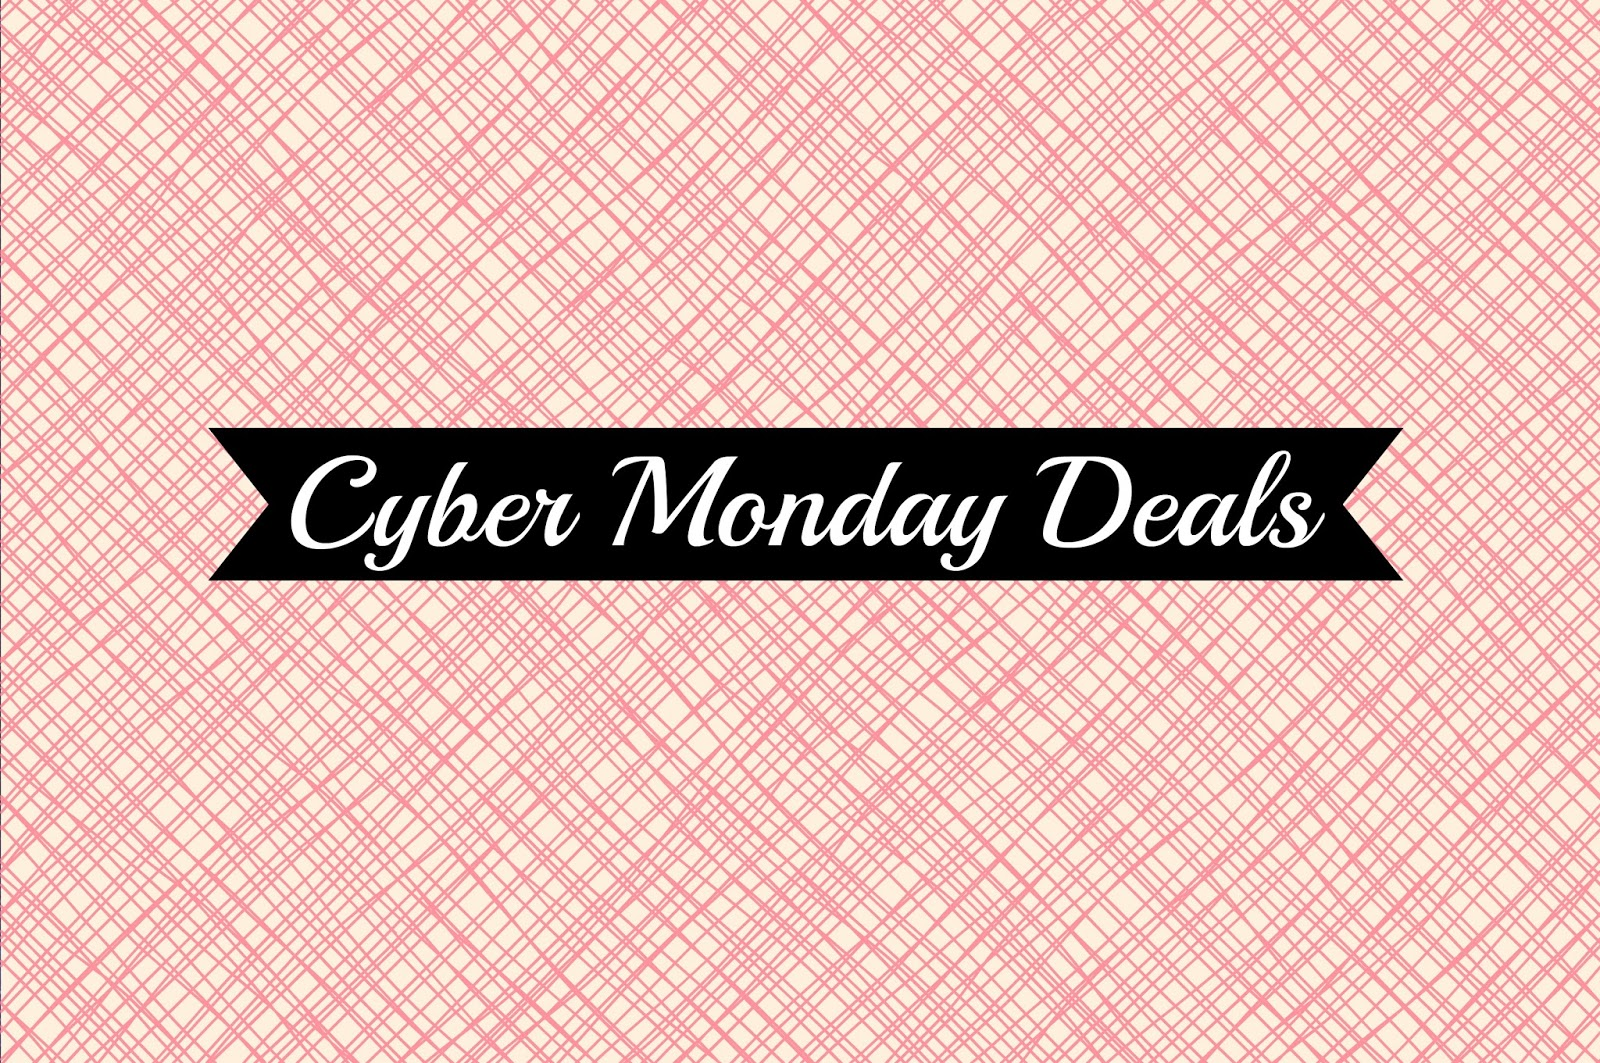 Nov 26, · Cyber Monday is over, but these deals are still good. Let our experts guide you to the most savings online.